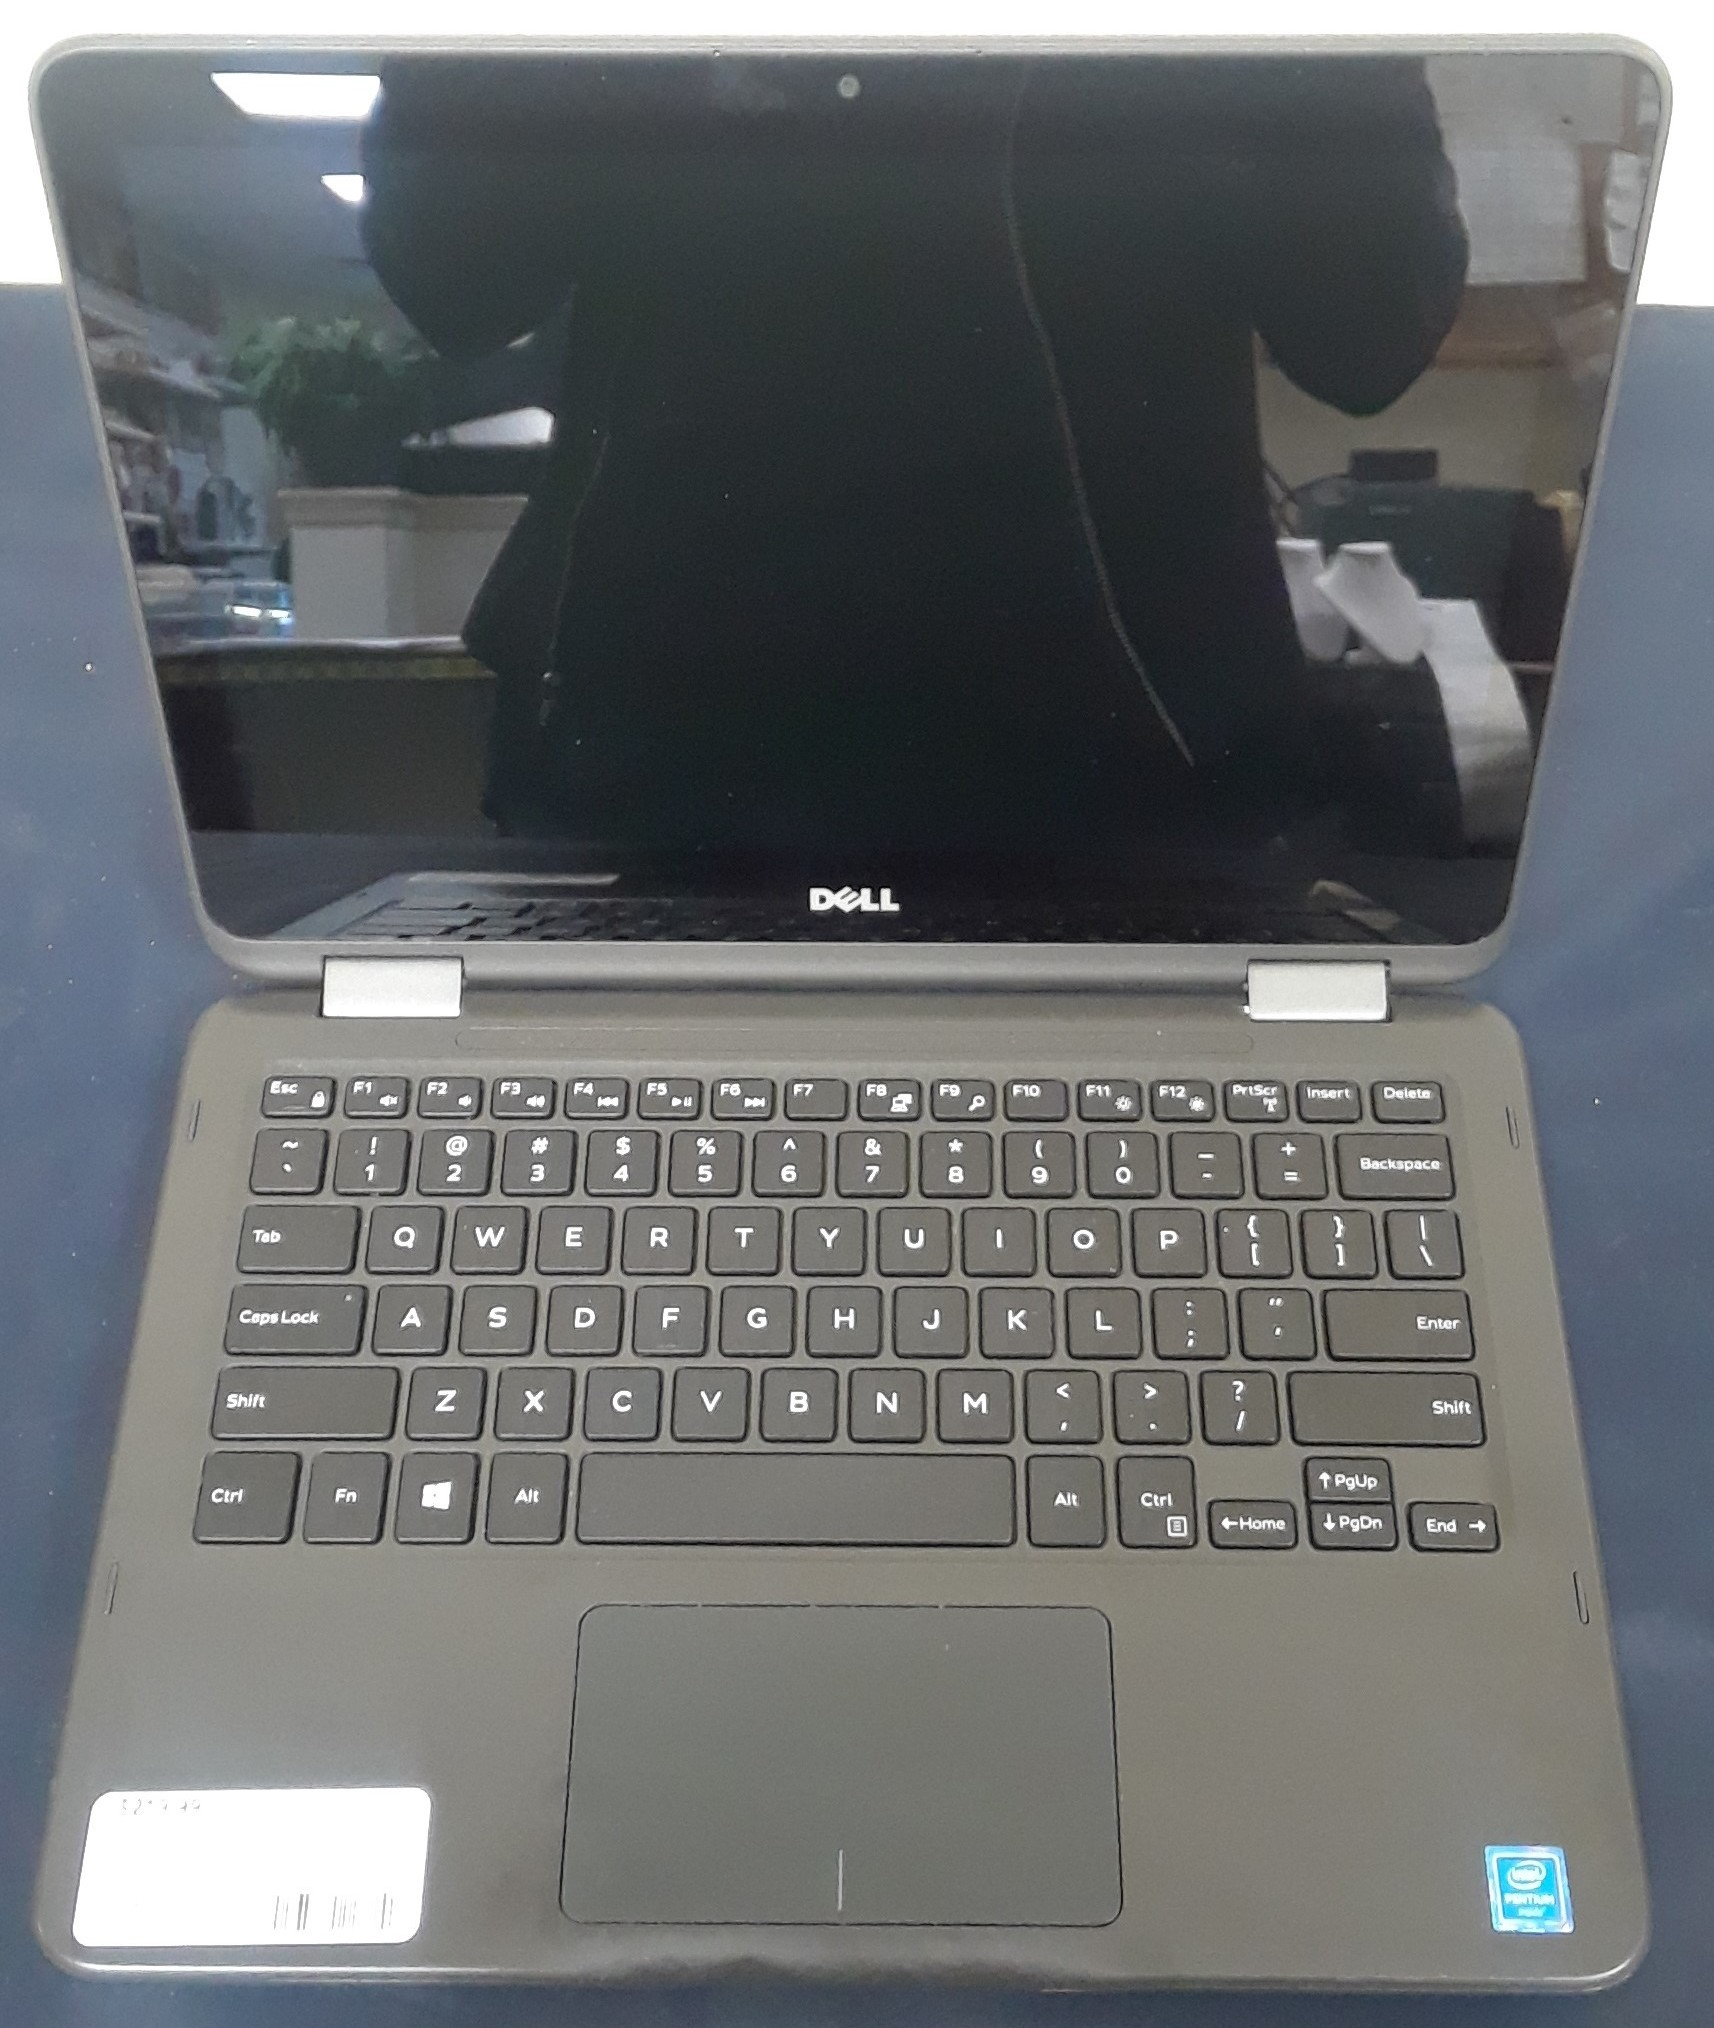 DELL - INSPIRON 11-3168 - 2-IN-1 TOUCHSCREEN, 4GB RAM, 500GB HD